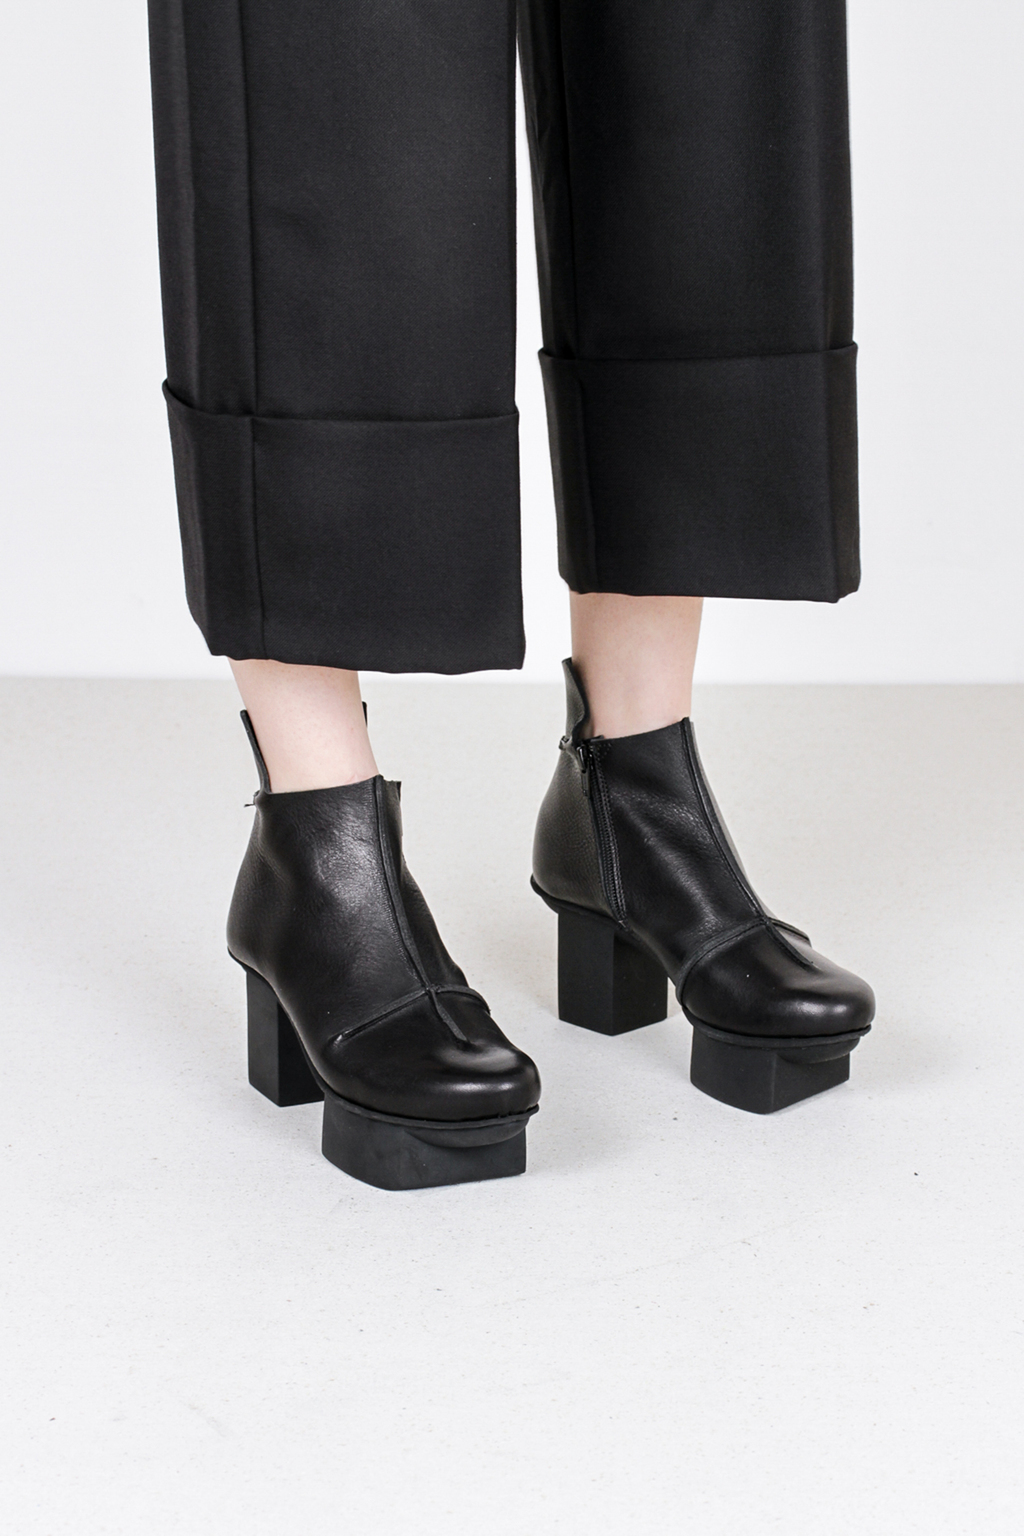 Trippen container f waw blk leather boots